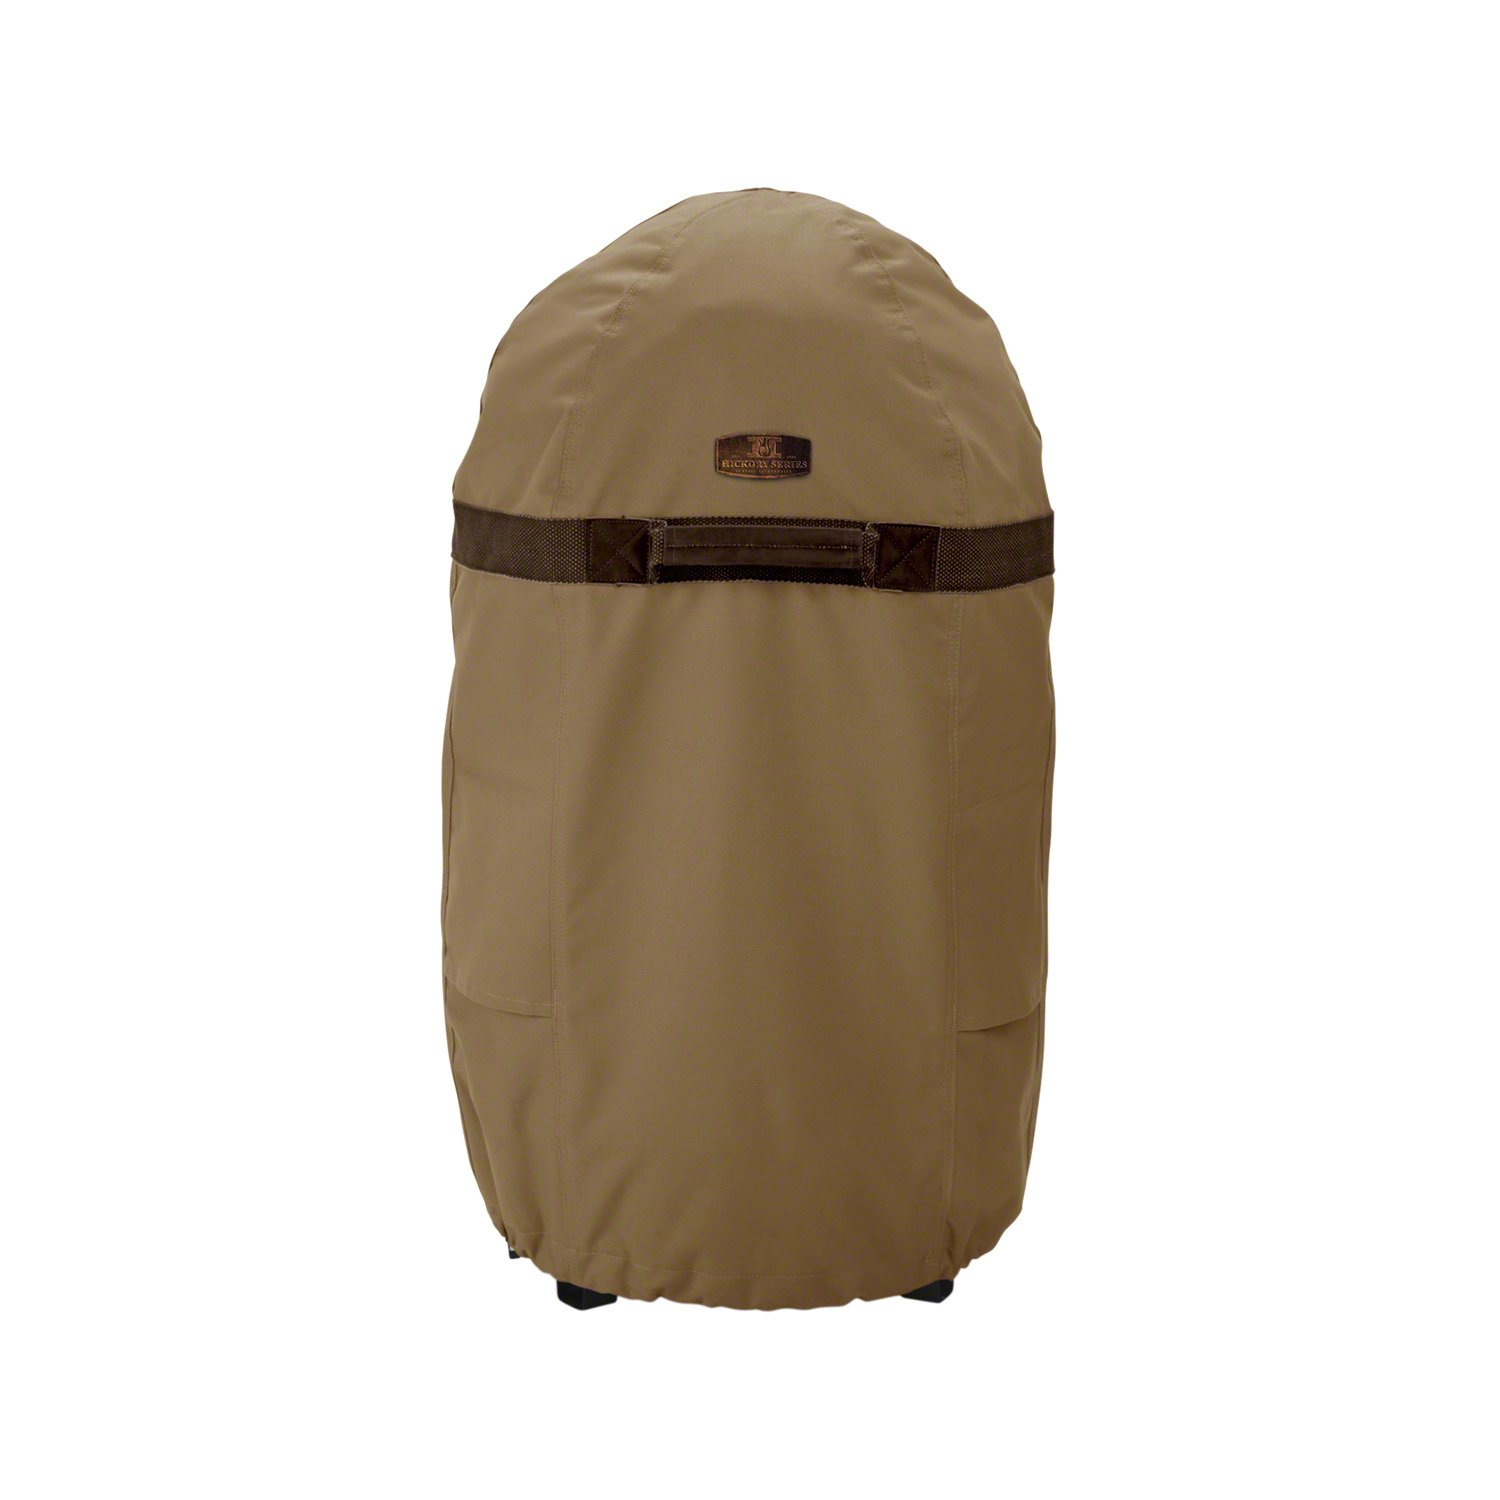 Classic Accessories Hickory Smoker/Fryer Cover, Large